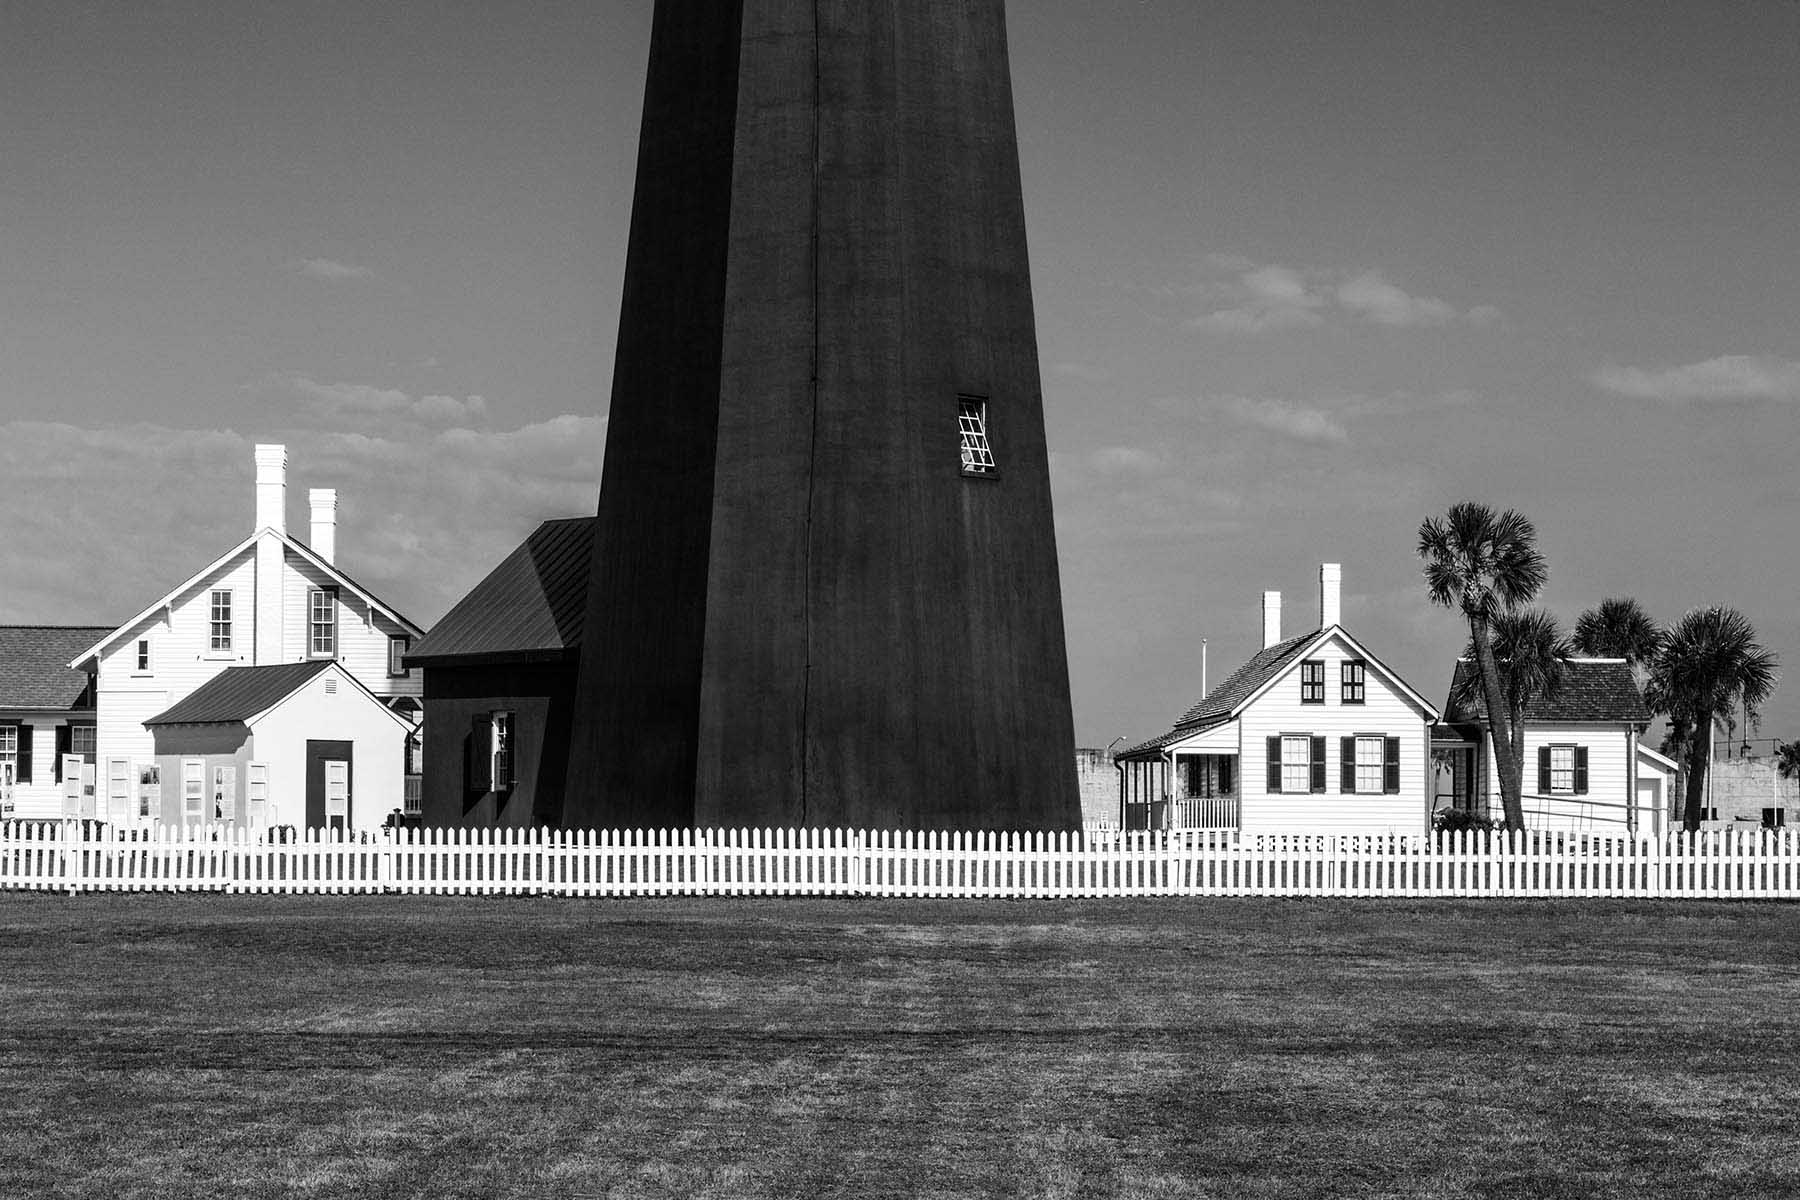 Tybee Island Lighthouse Savannah Georgia Tim Barnwell photographer